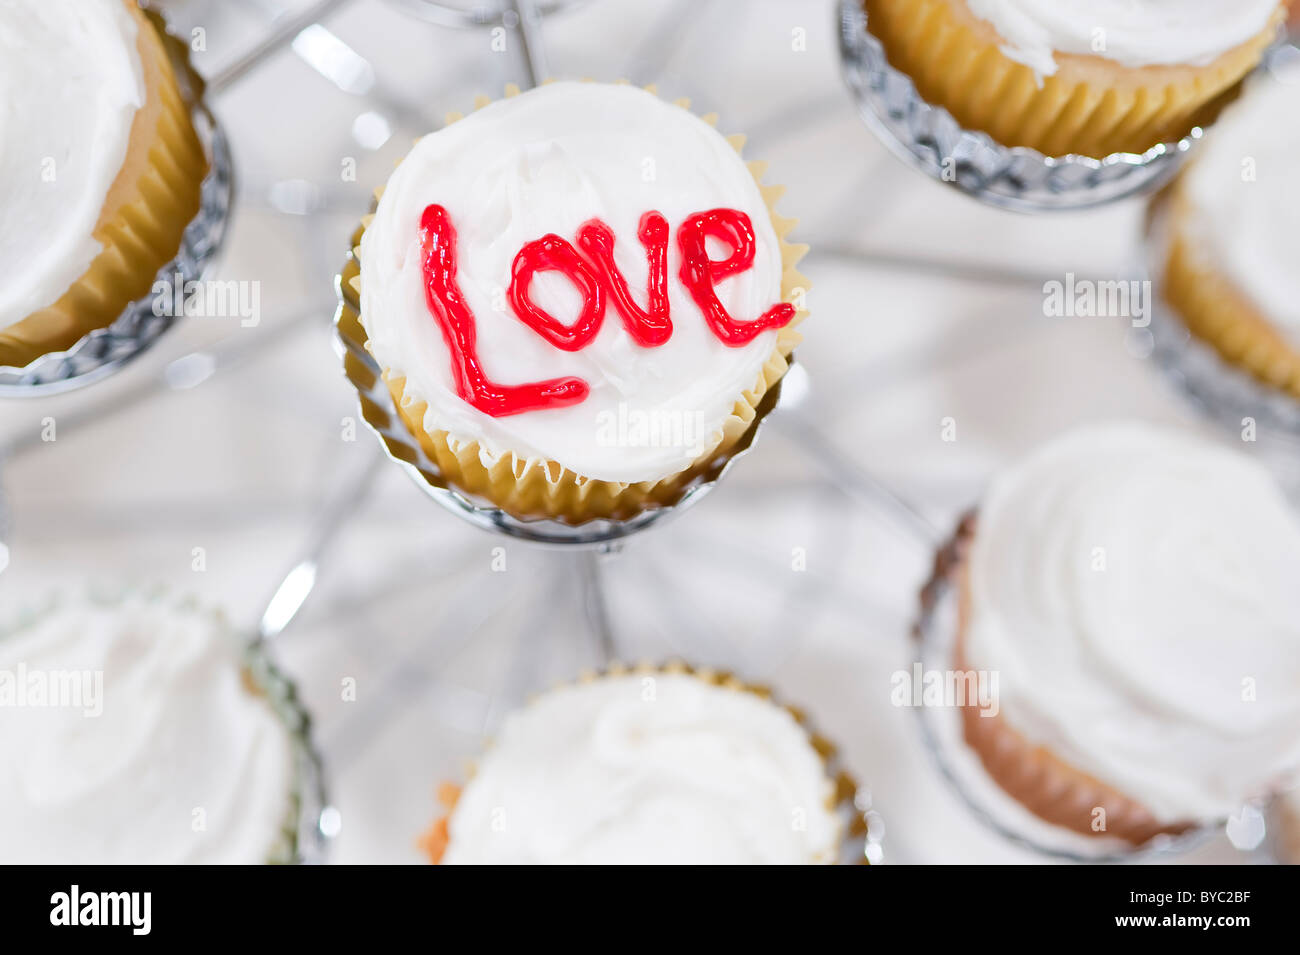 Cupcakes in holder with the letters Love written on top - Stock Image